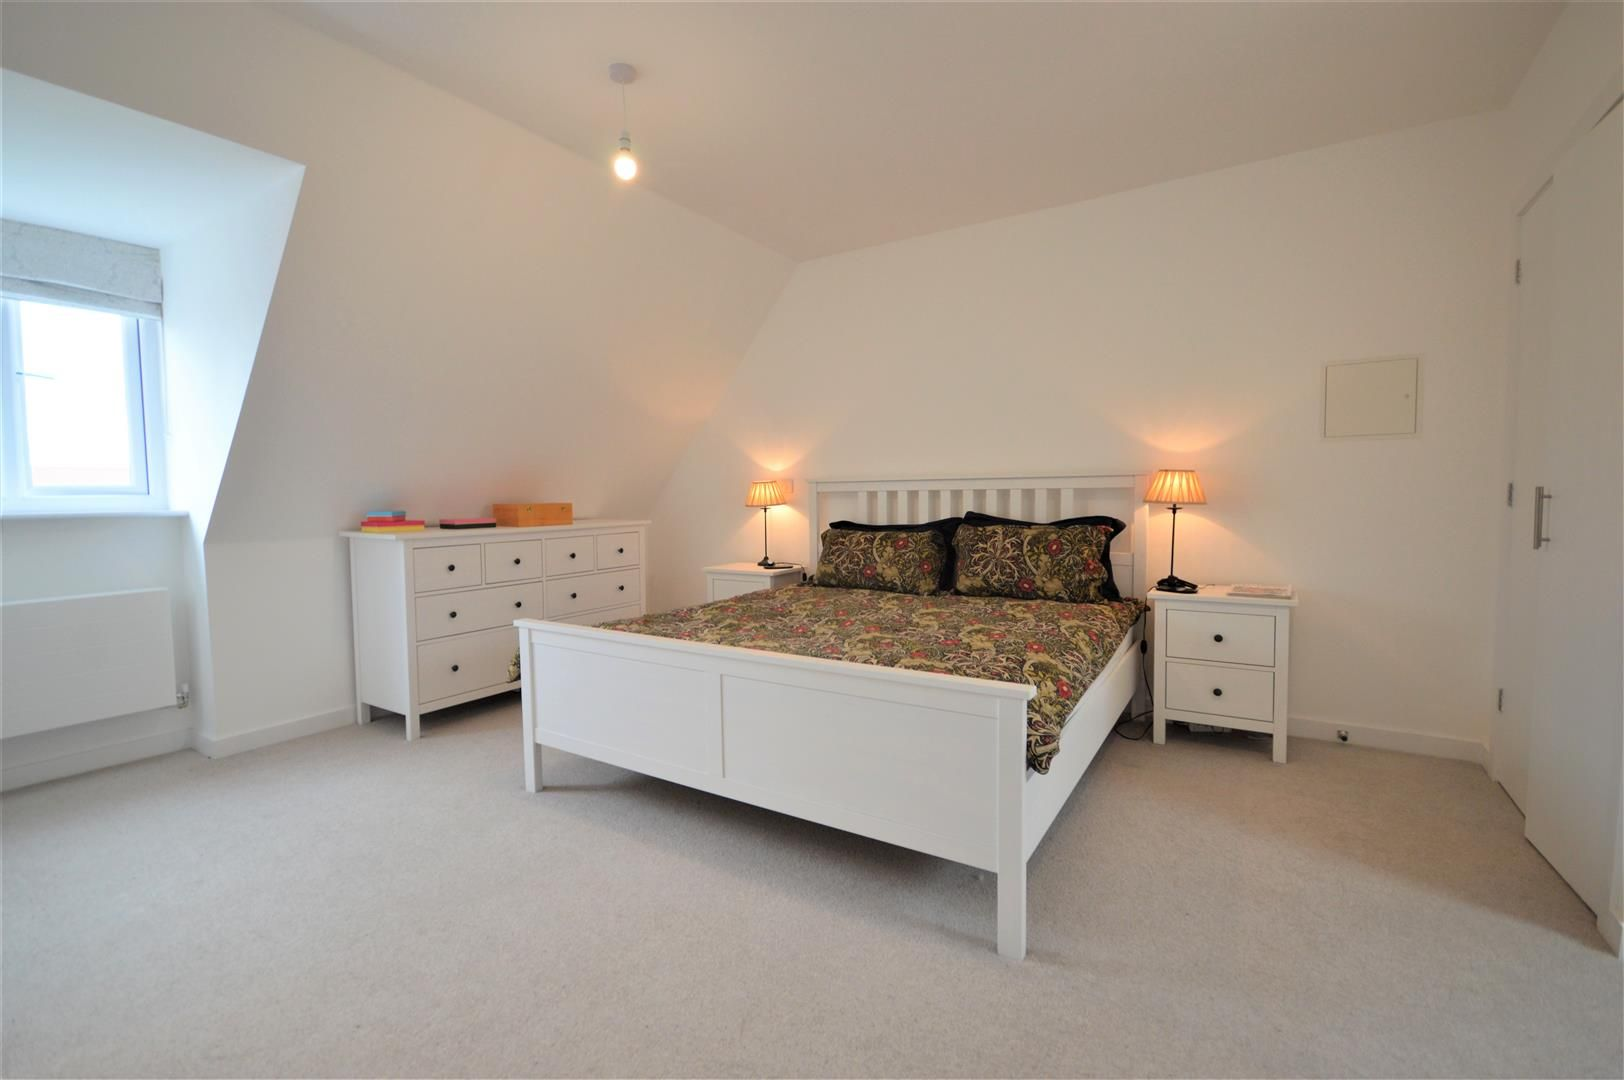 5 bed detached for sale in Weobley 12